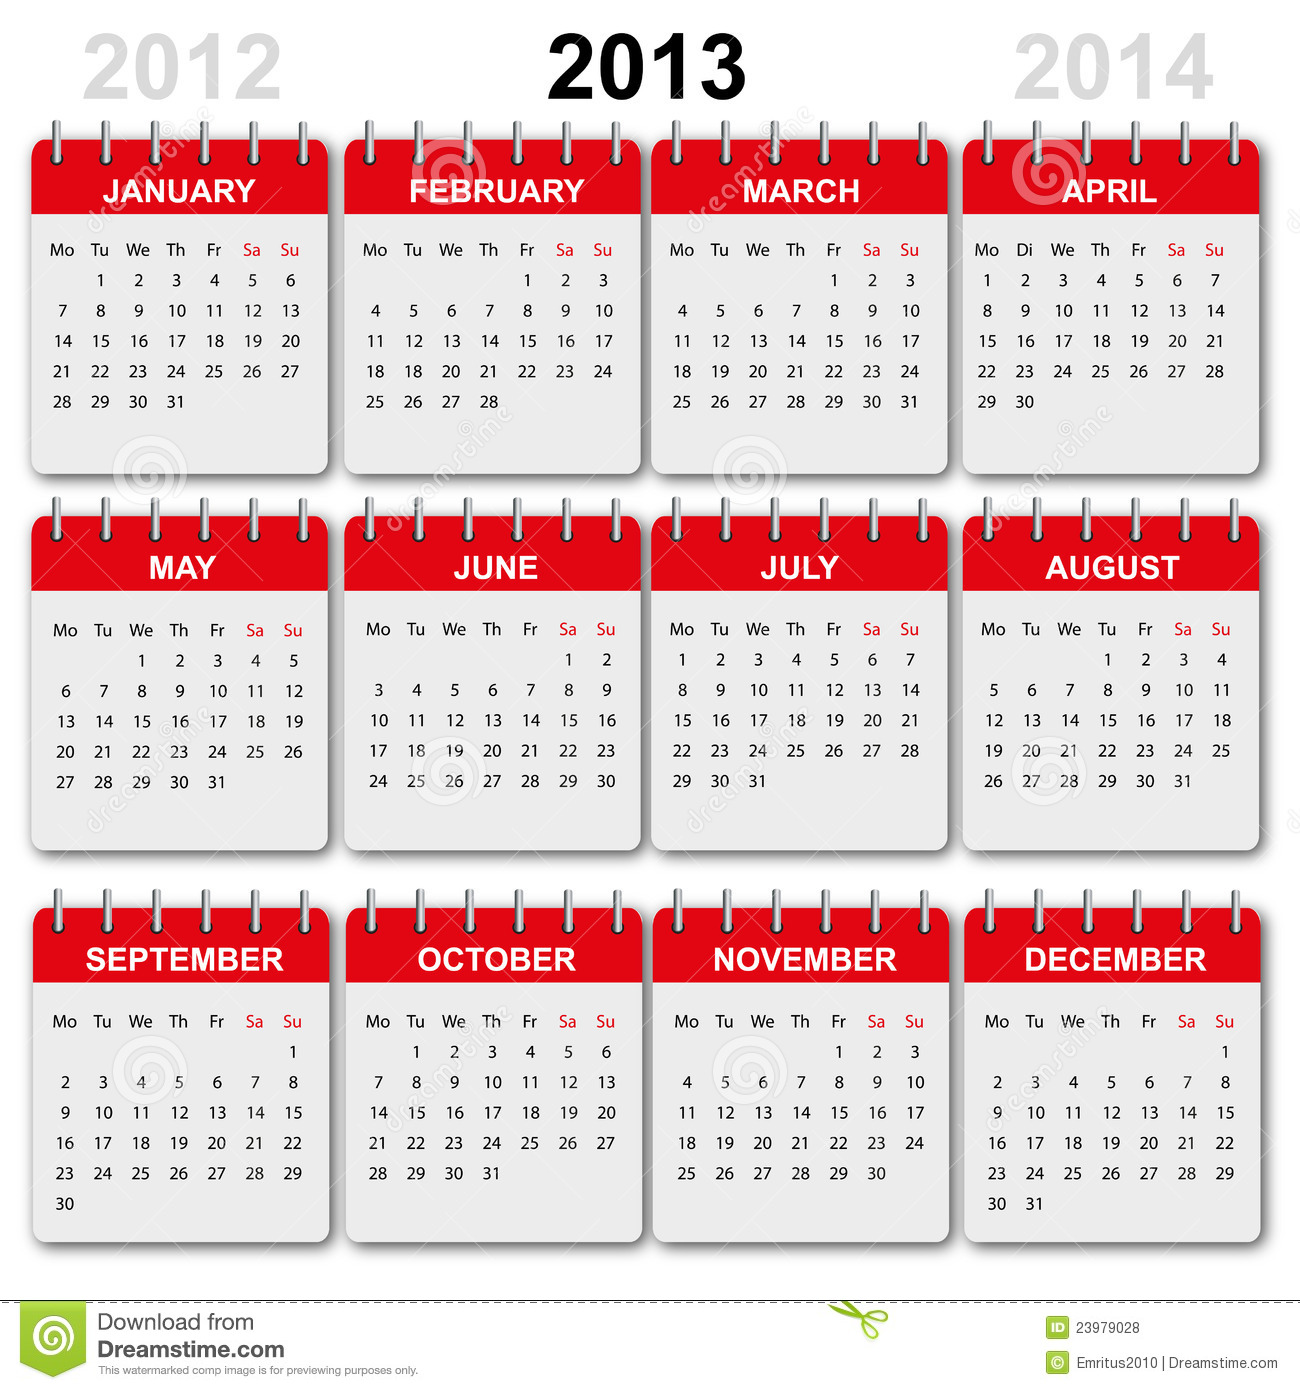 Calendar English : Calendar english royalty free stock photos image